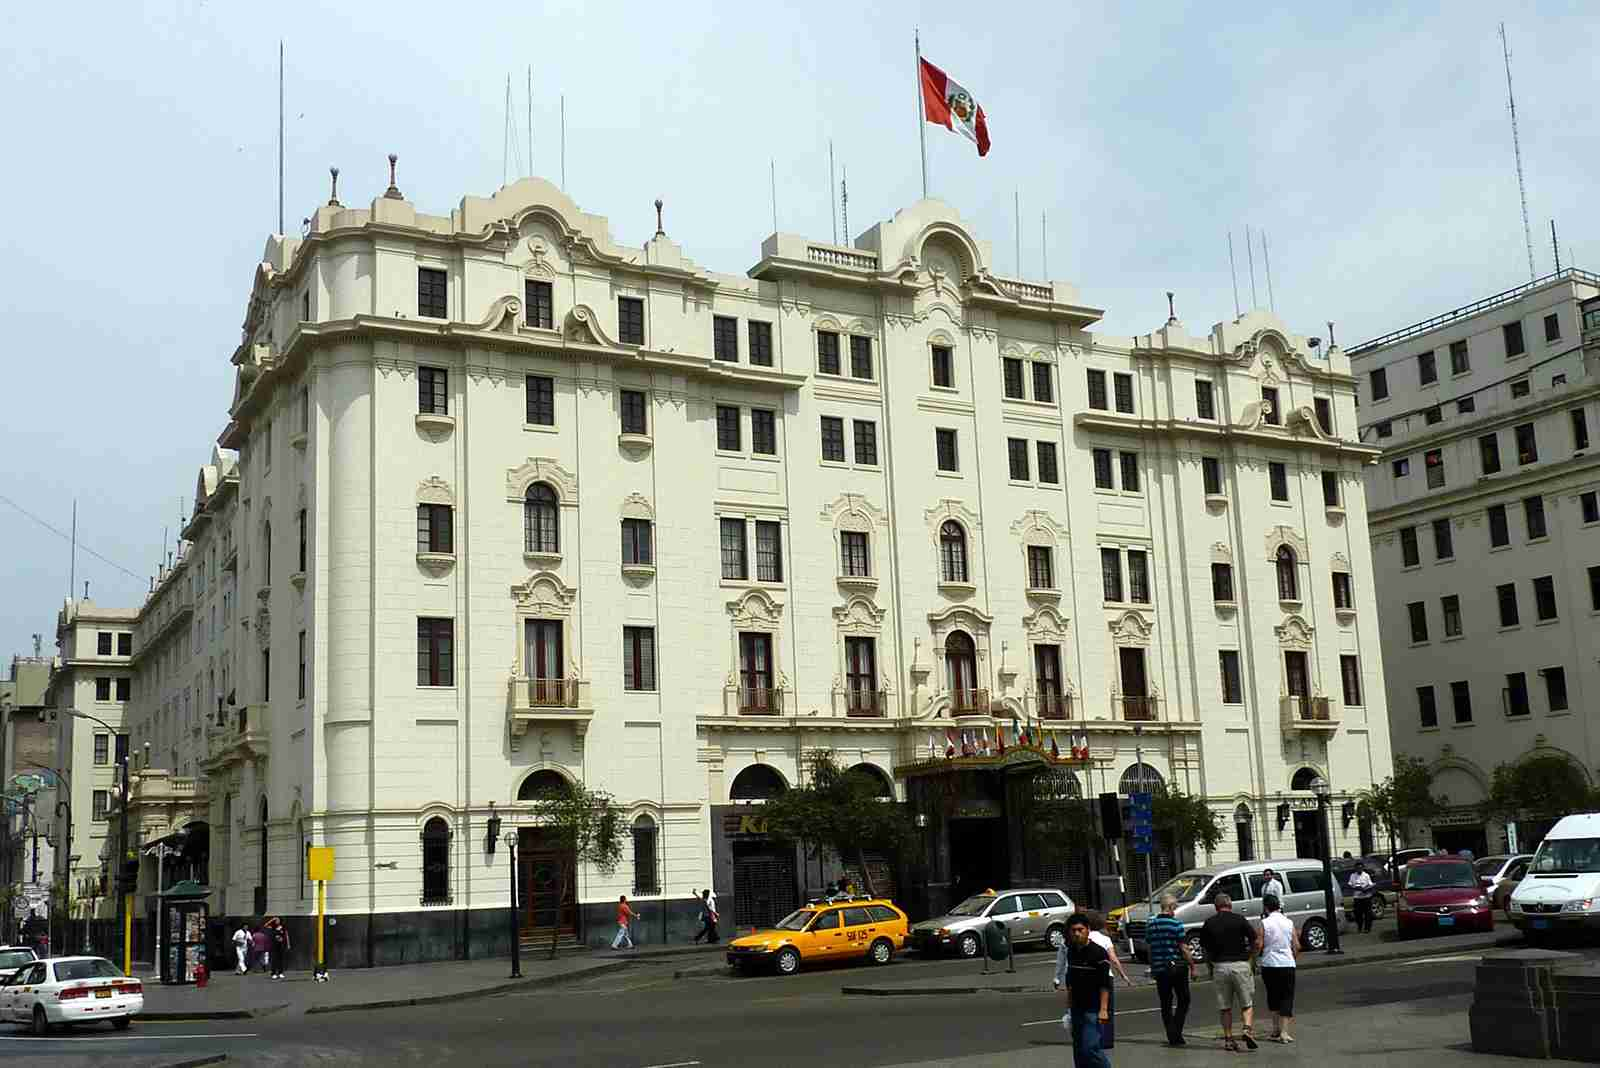 The Gran Hotel Bolivar in Lima. (Photo by Bobak Ha